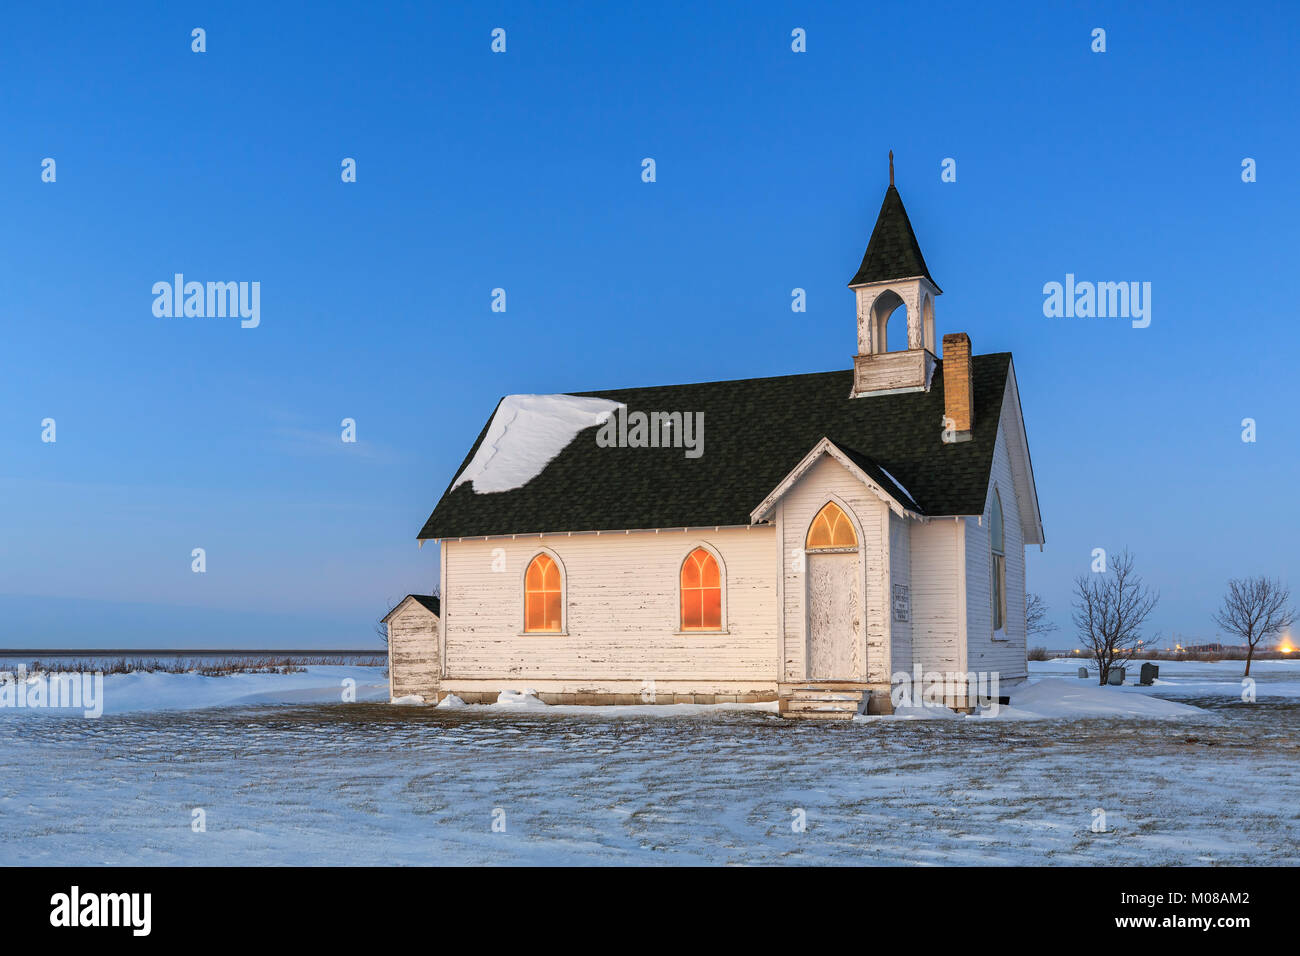 Abandoned church of the ghosttown Union Point, Manitoba, Canada. - Stock Image